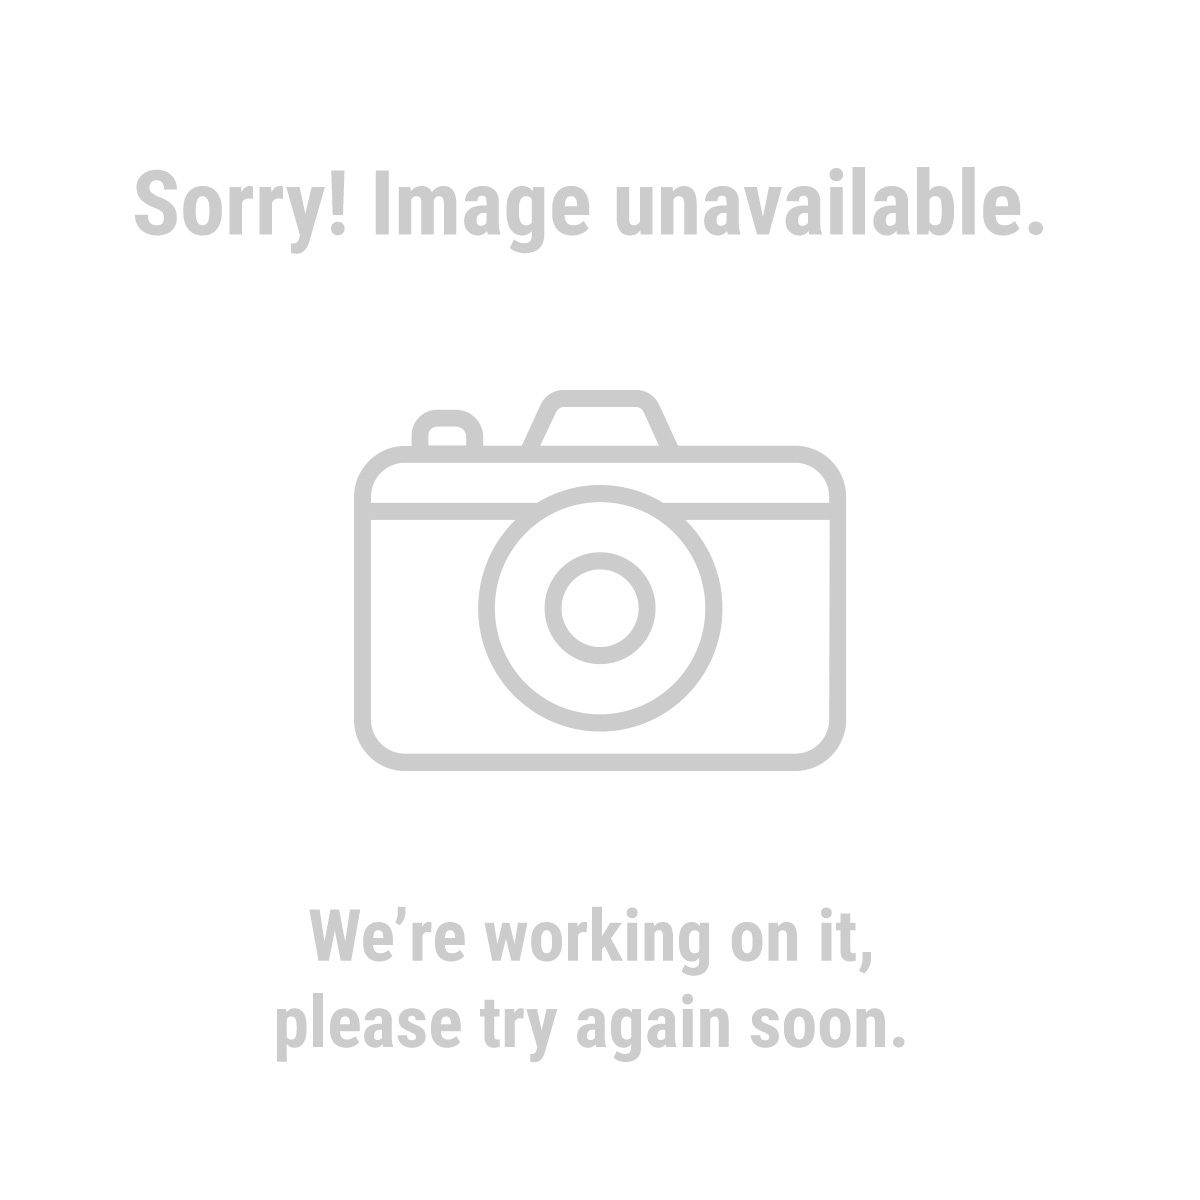 Vanguard 62926 100 ft. x 14 Gauge Indoor/Outdoor Extension Cord